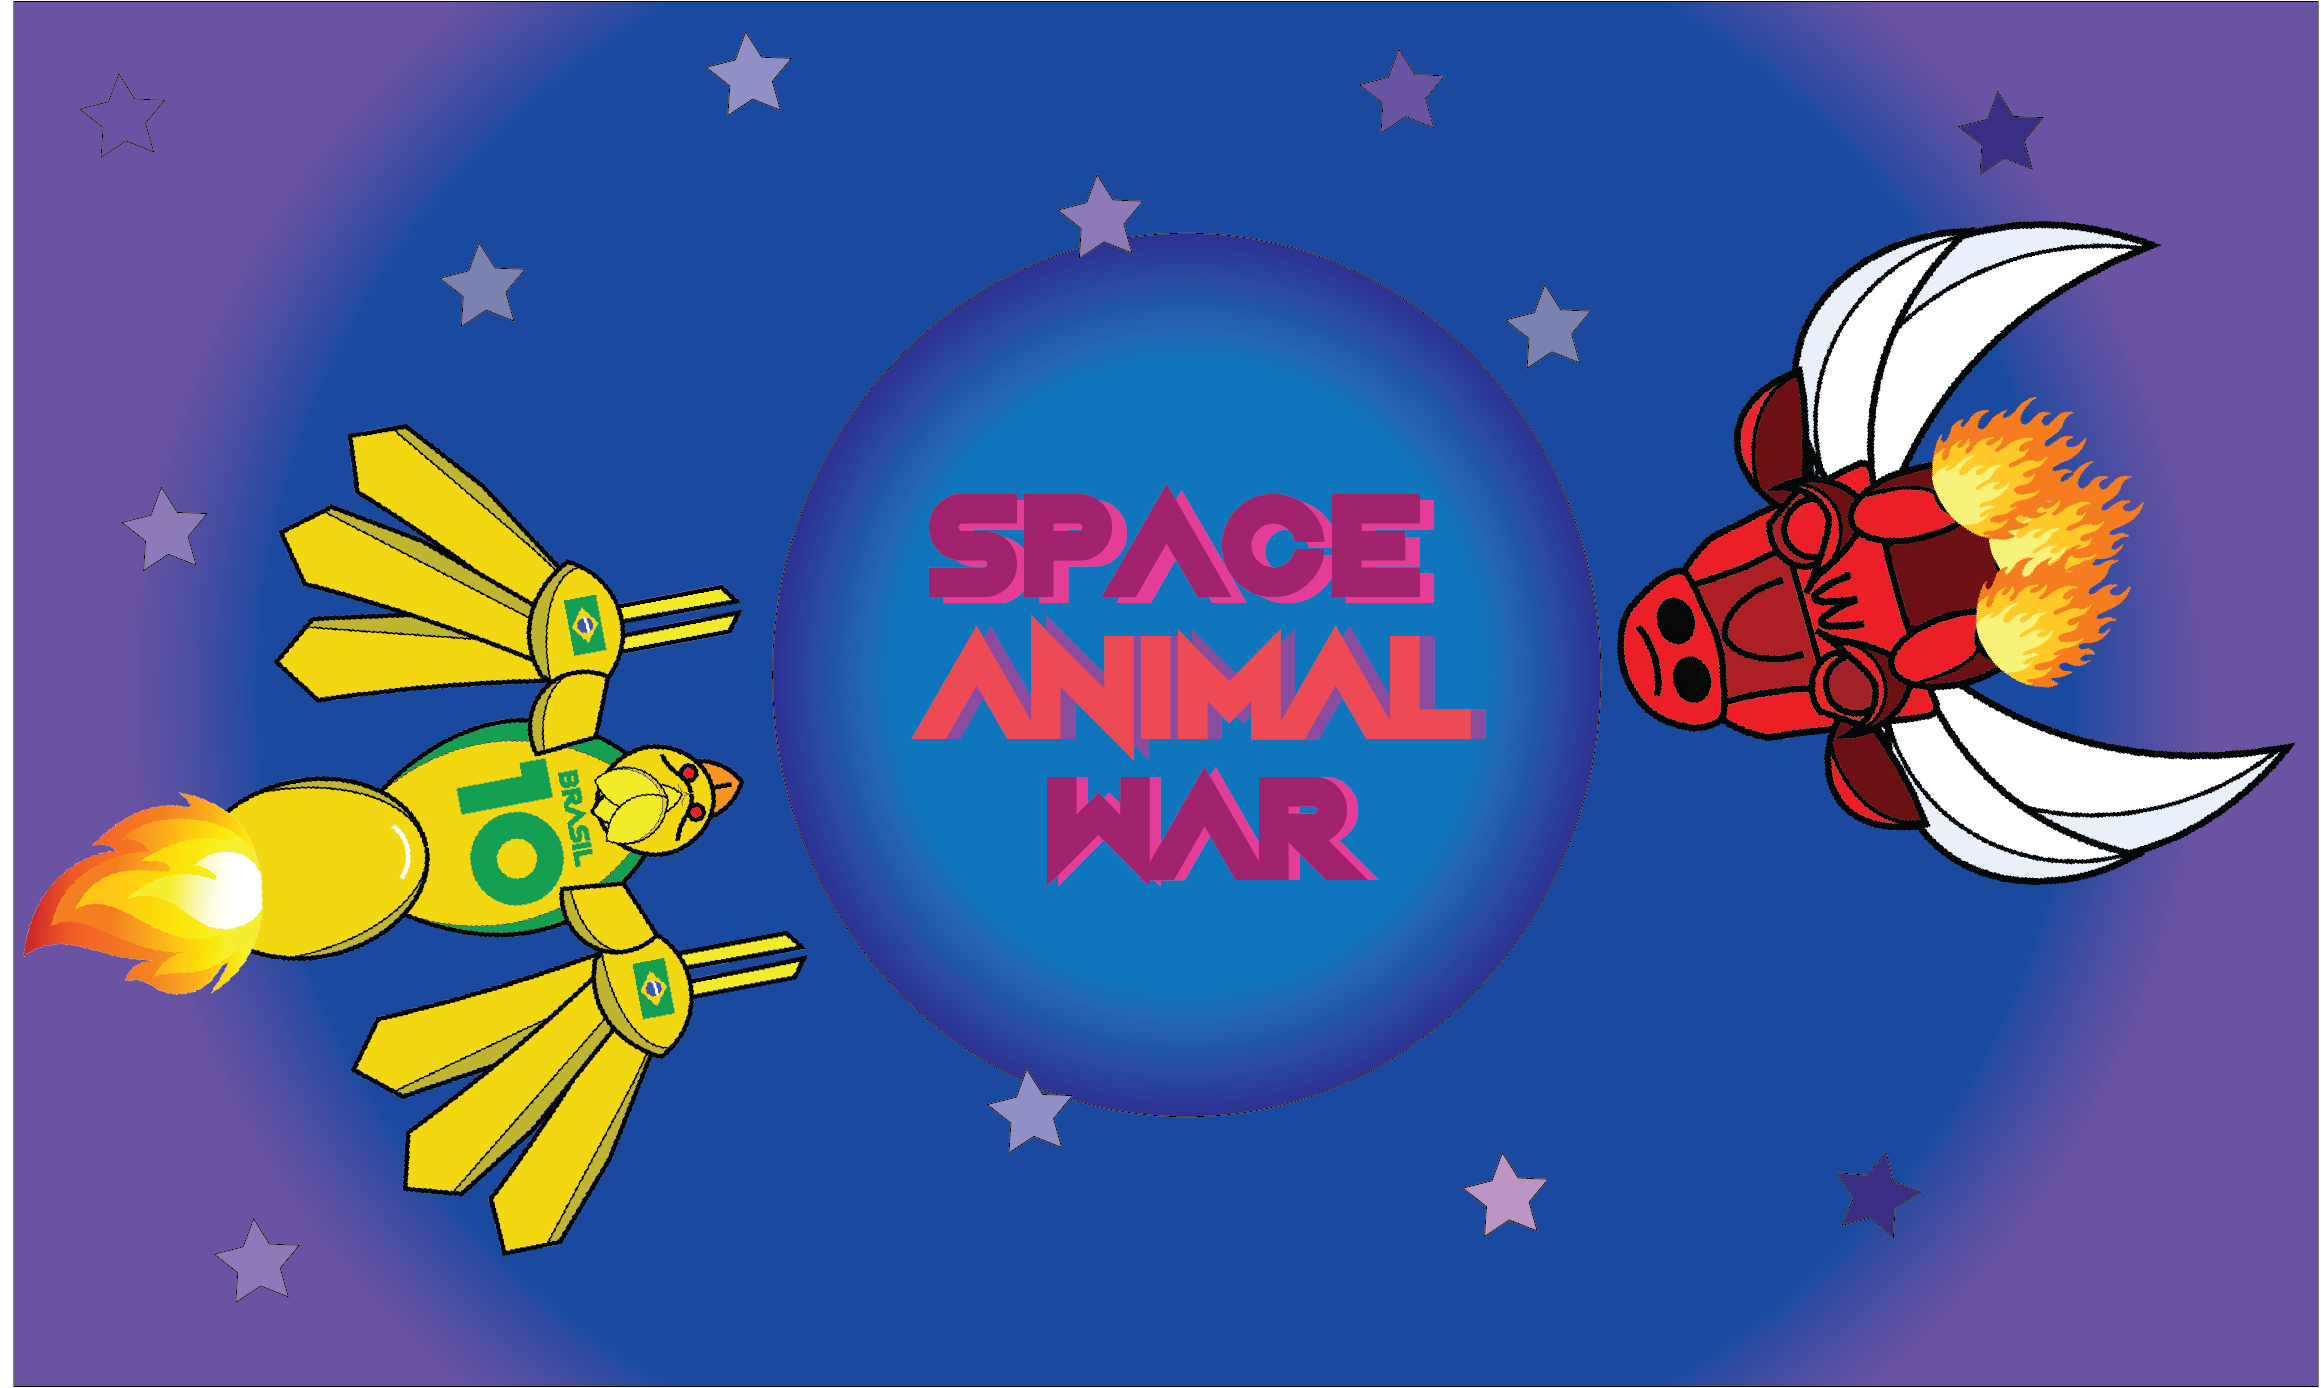 Space Animal War - OPEN BETA NOW!